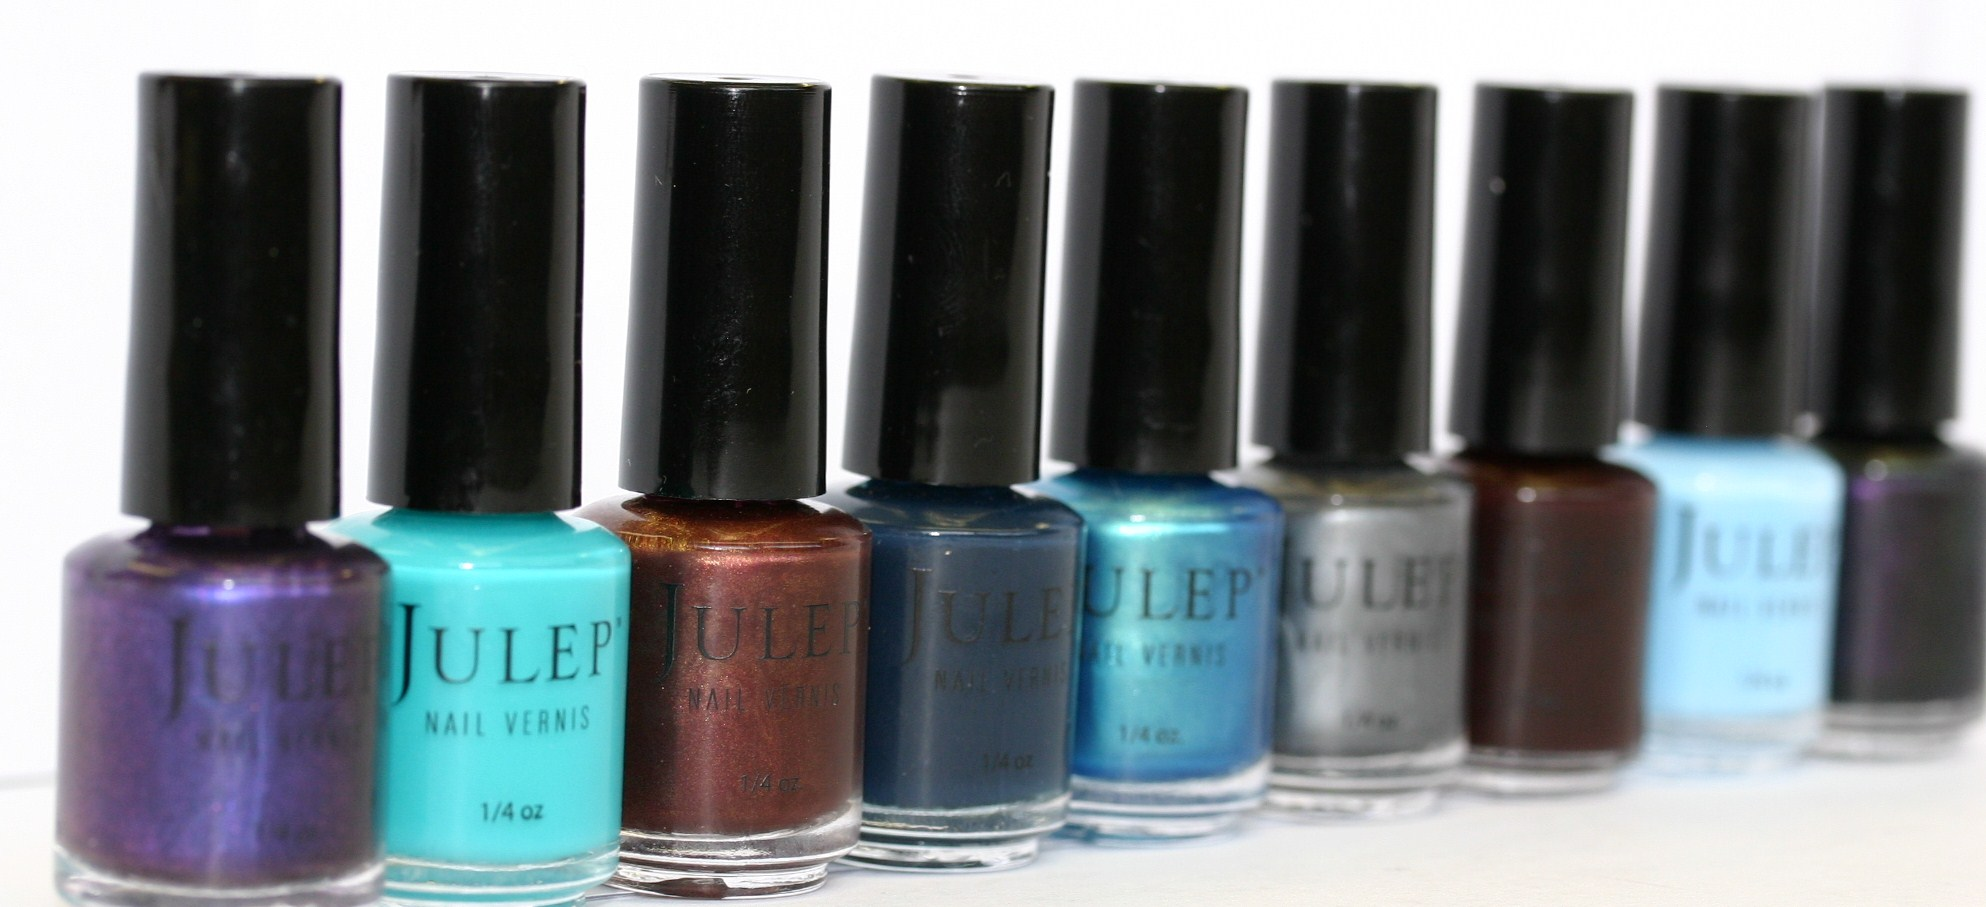 Holiday Beauty: Julep Nail Parlor Offers Great Deals for Looking ...